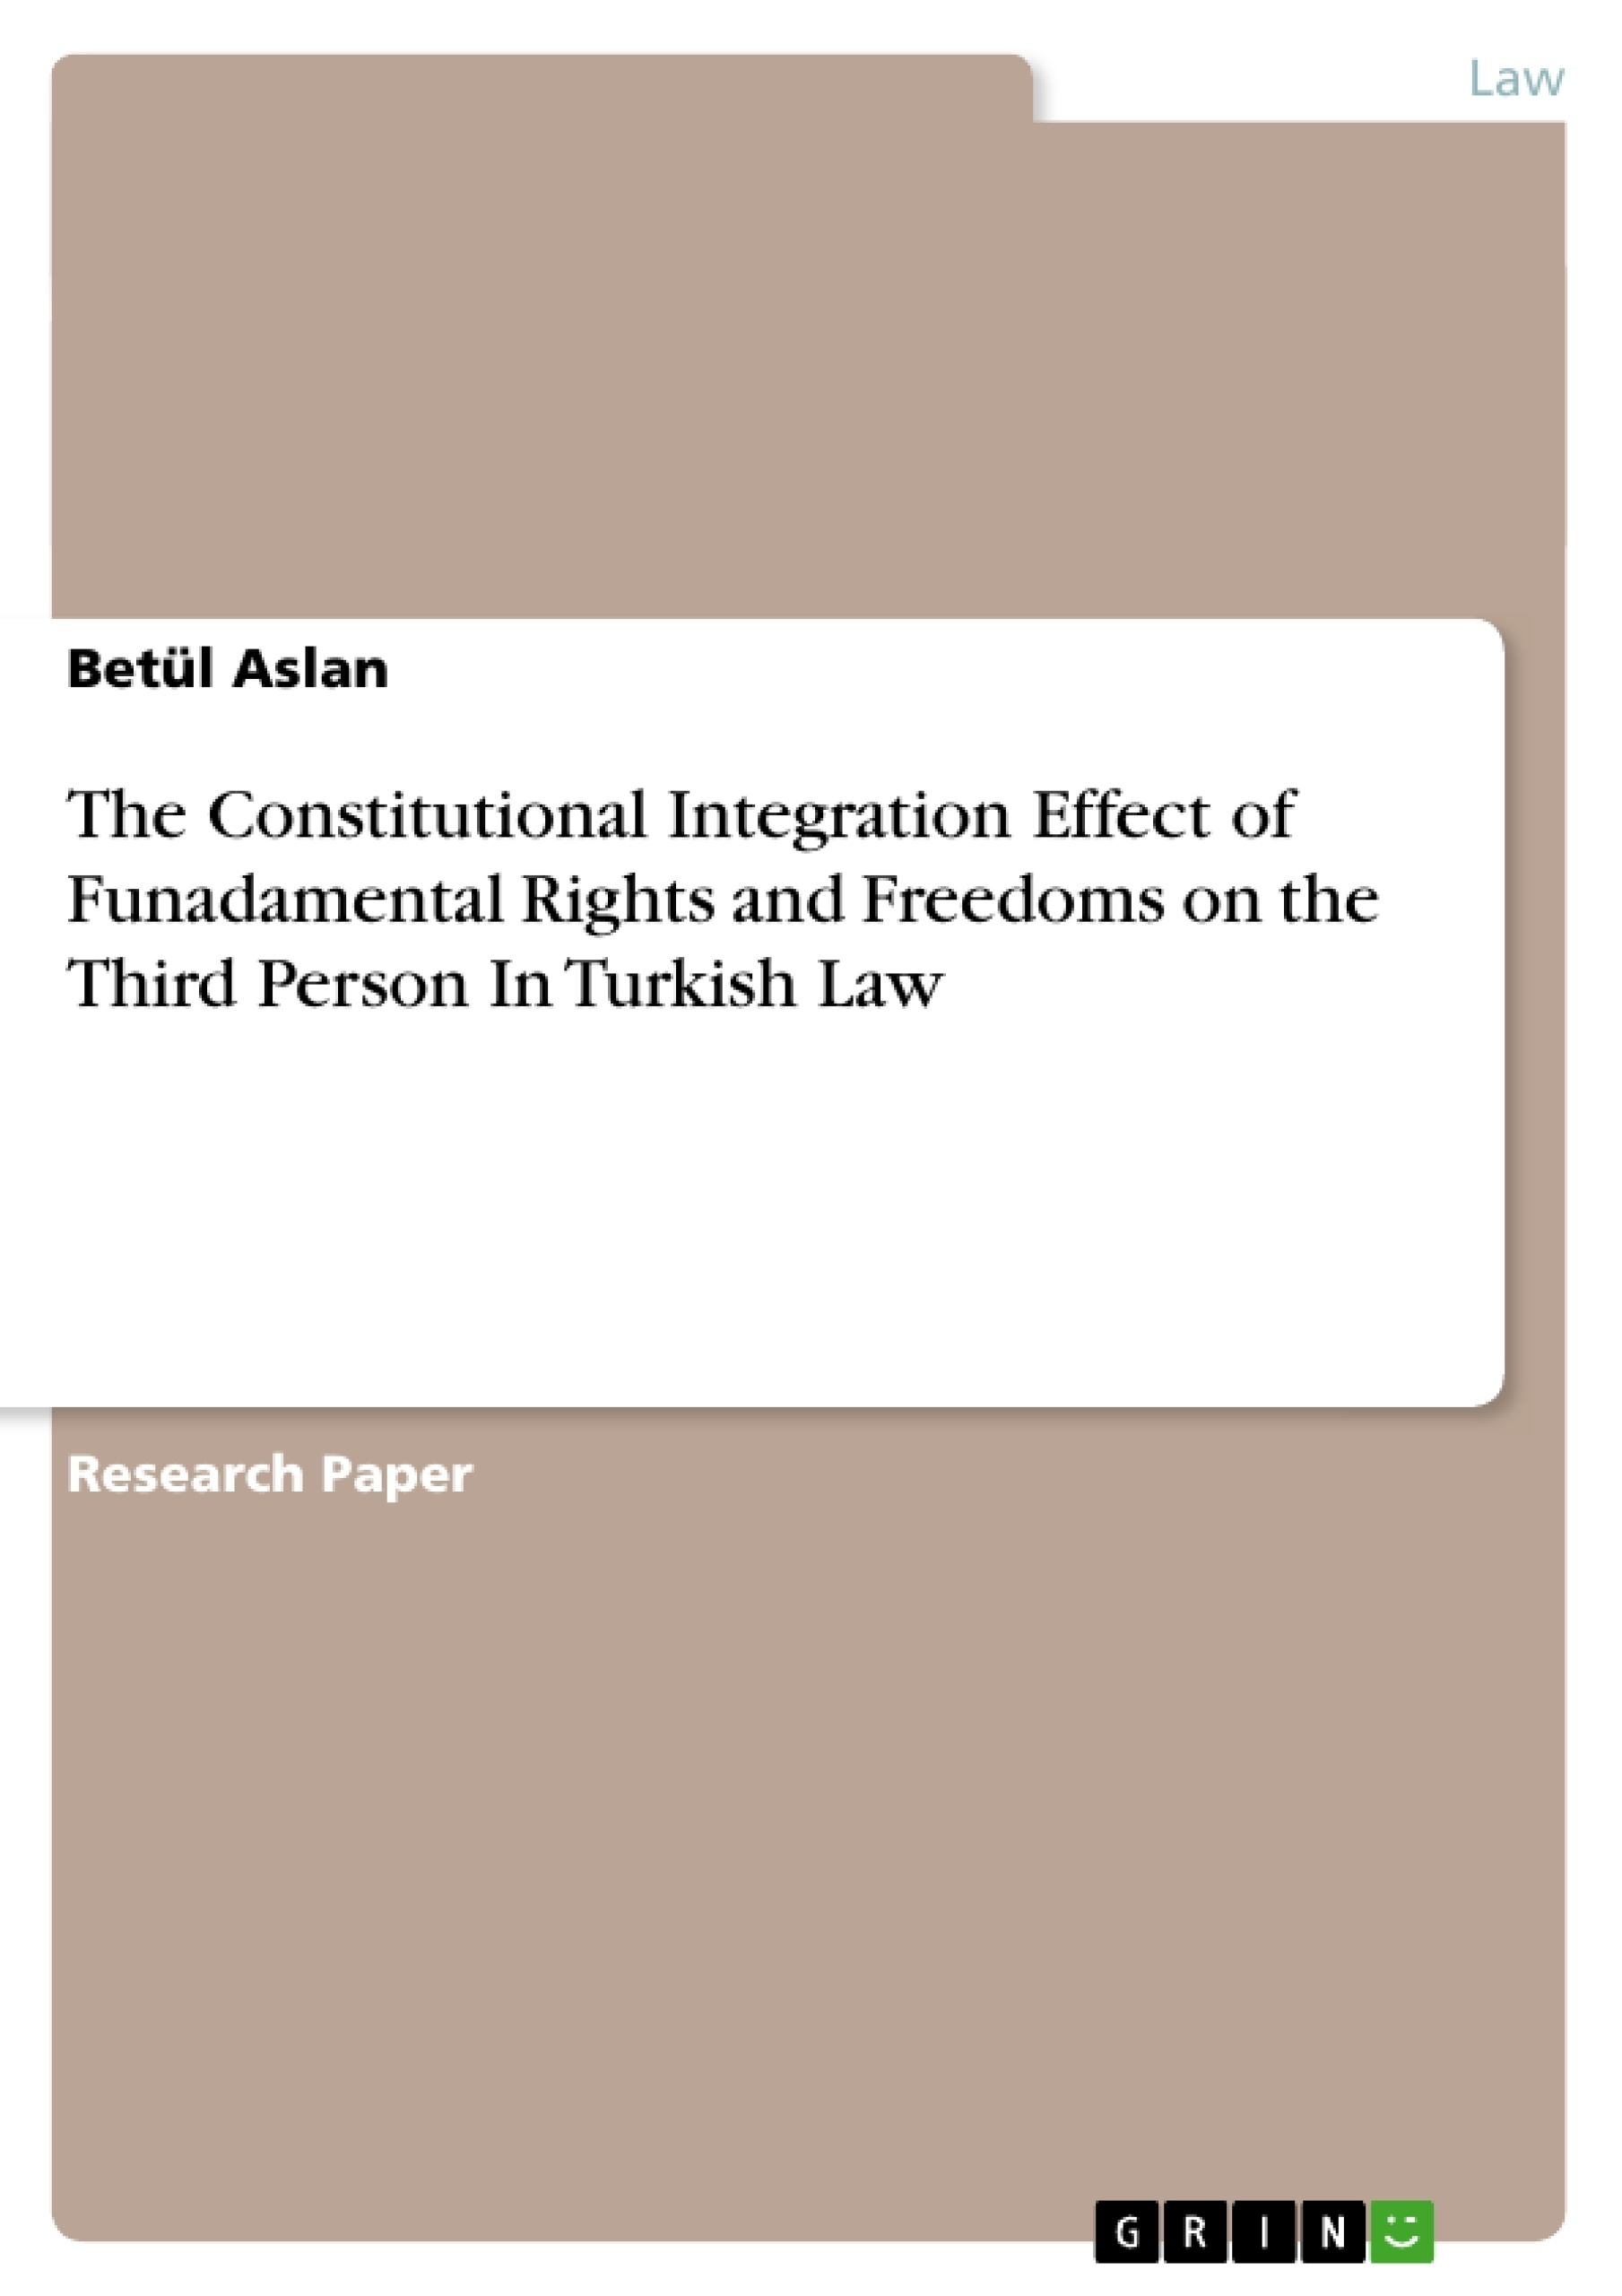 Title: The Constitutional Integration Effect of Funadamental Rights and Freedoms on the Third Person In Turkish Law